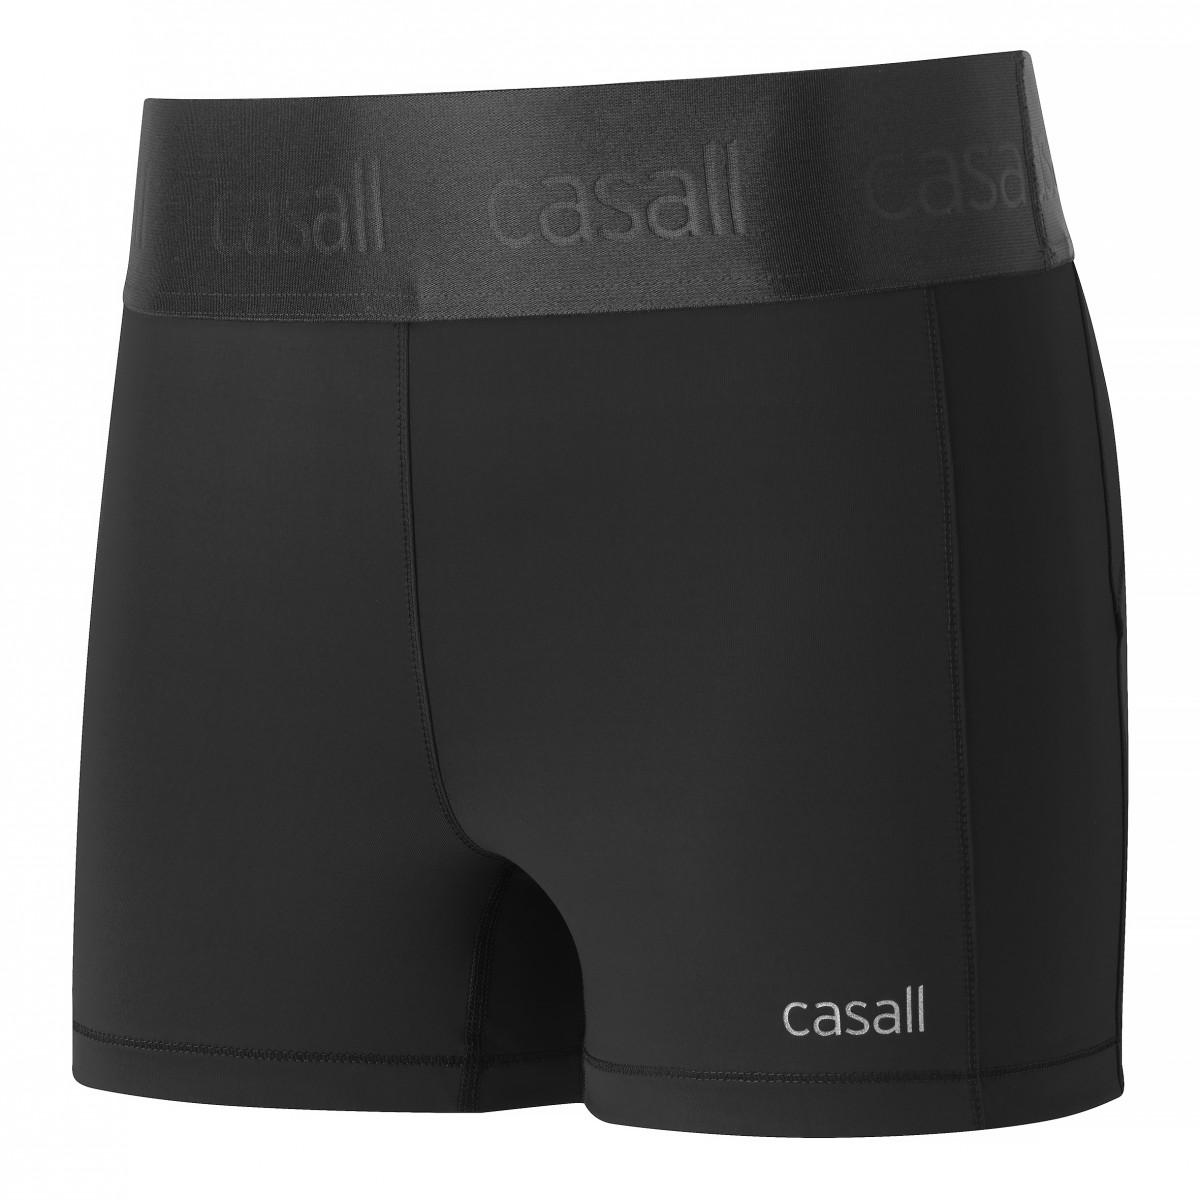 Casall Shiny Waist Short Tights